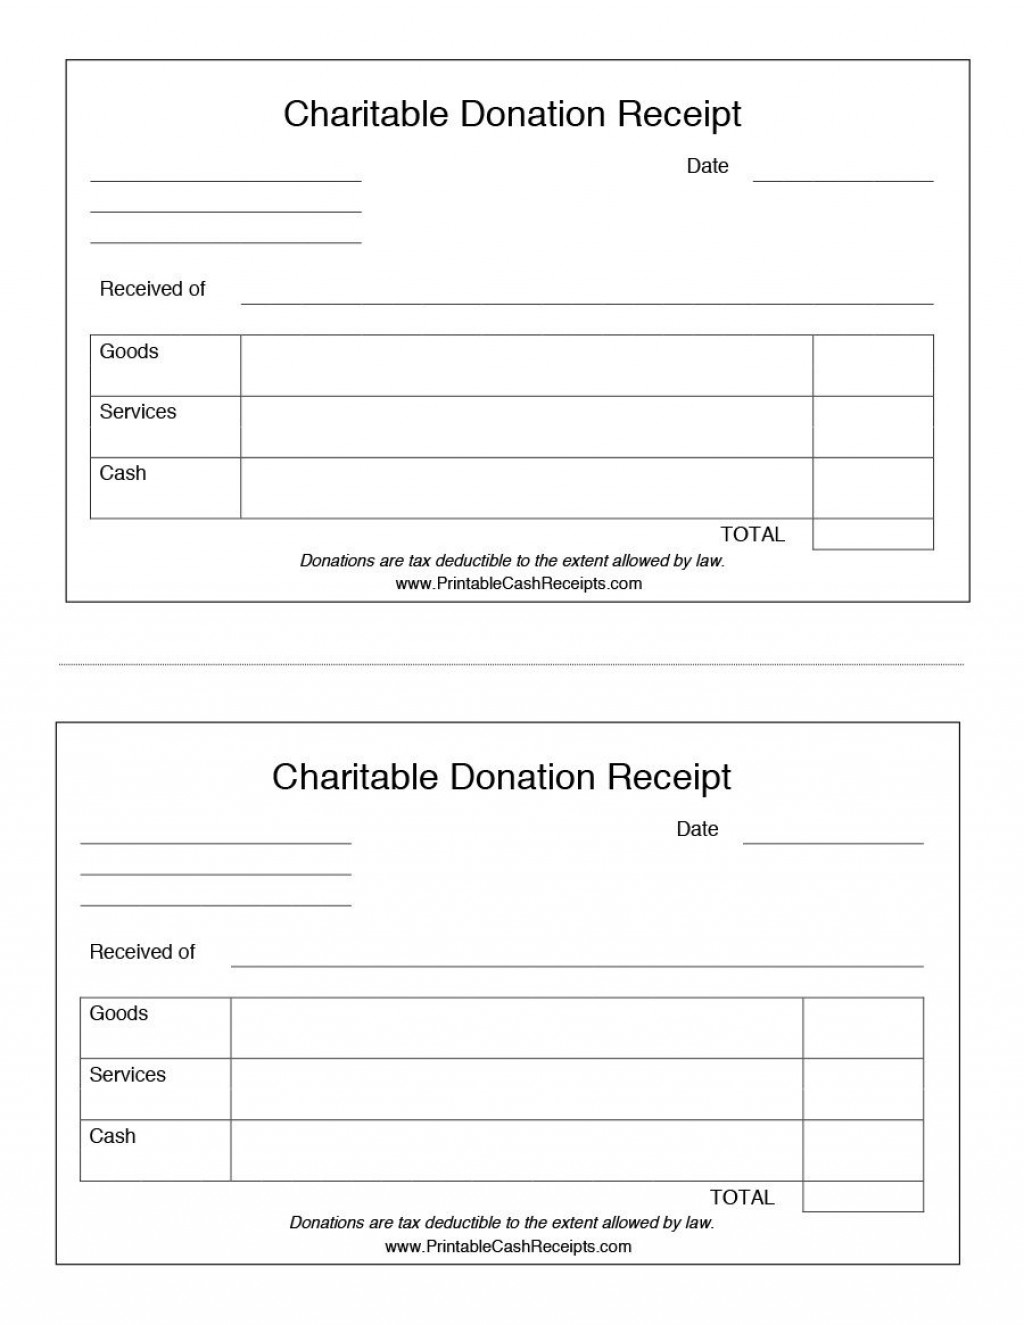 004 Surprising Charitable Contribution Receipt Example Inspiration  Donation Tax Template Sample LetterLarge